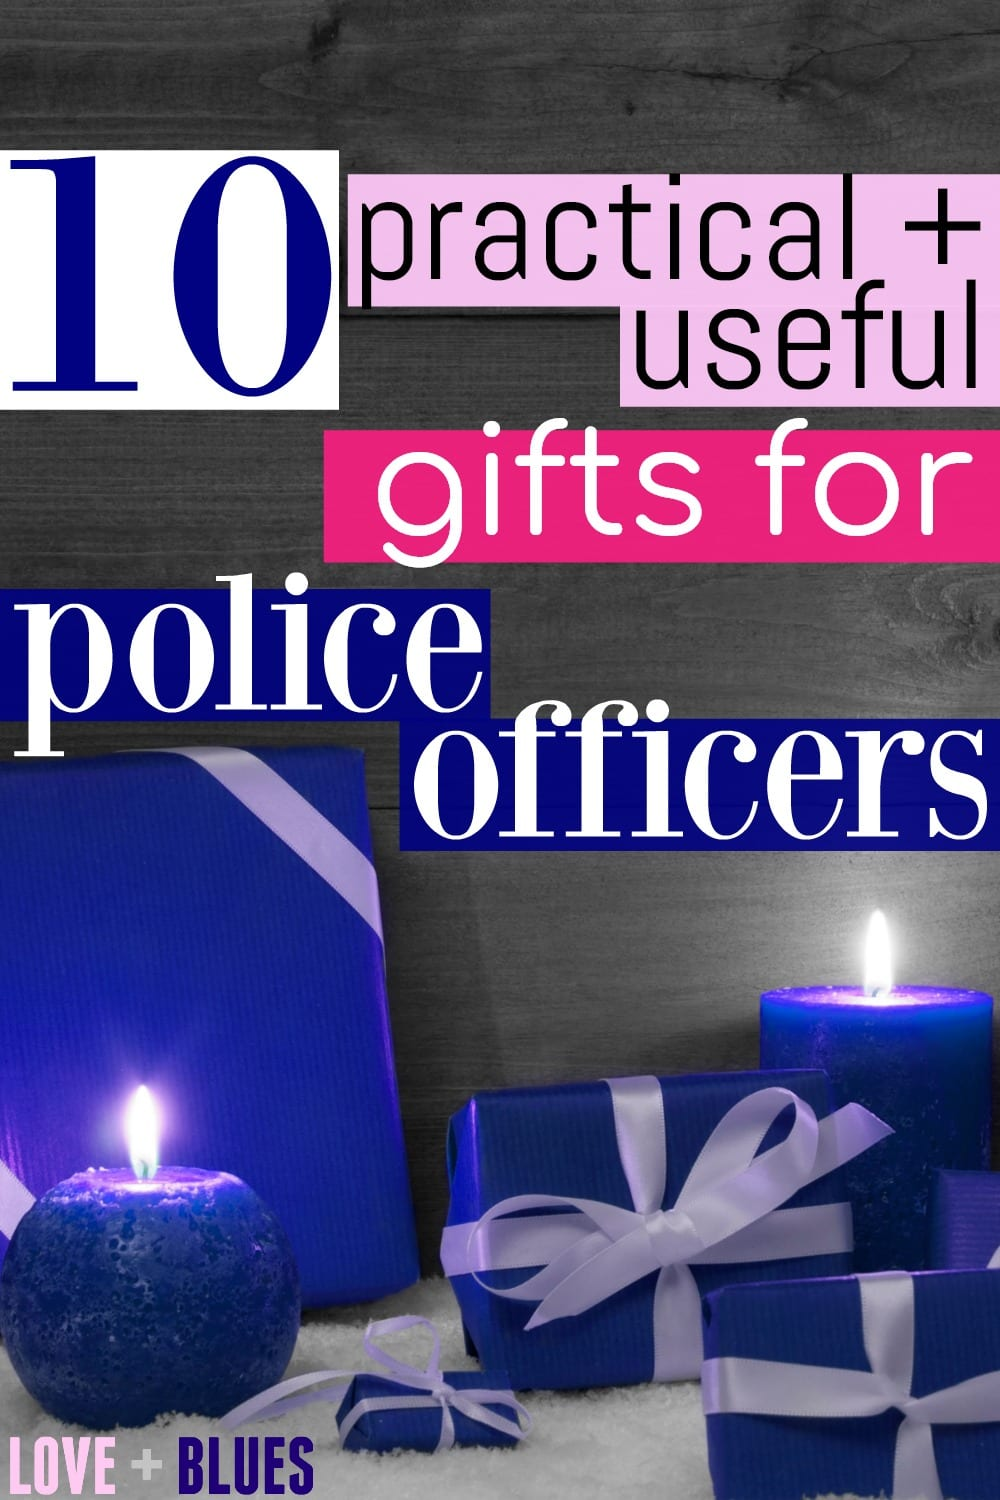 This is a great list! I'm obsessed with #8. I might have to get one for myself! But seriously, great gift ideas for police officers :)